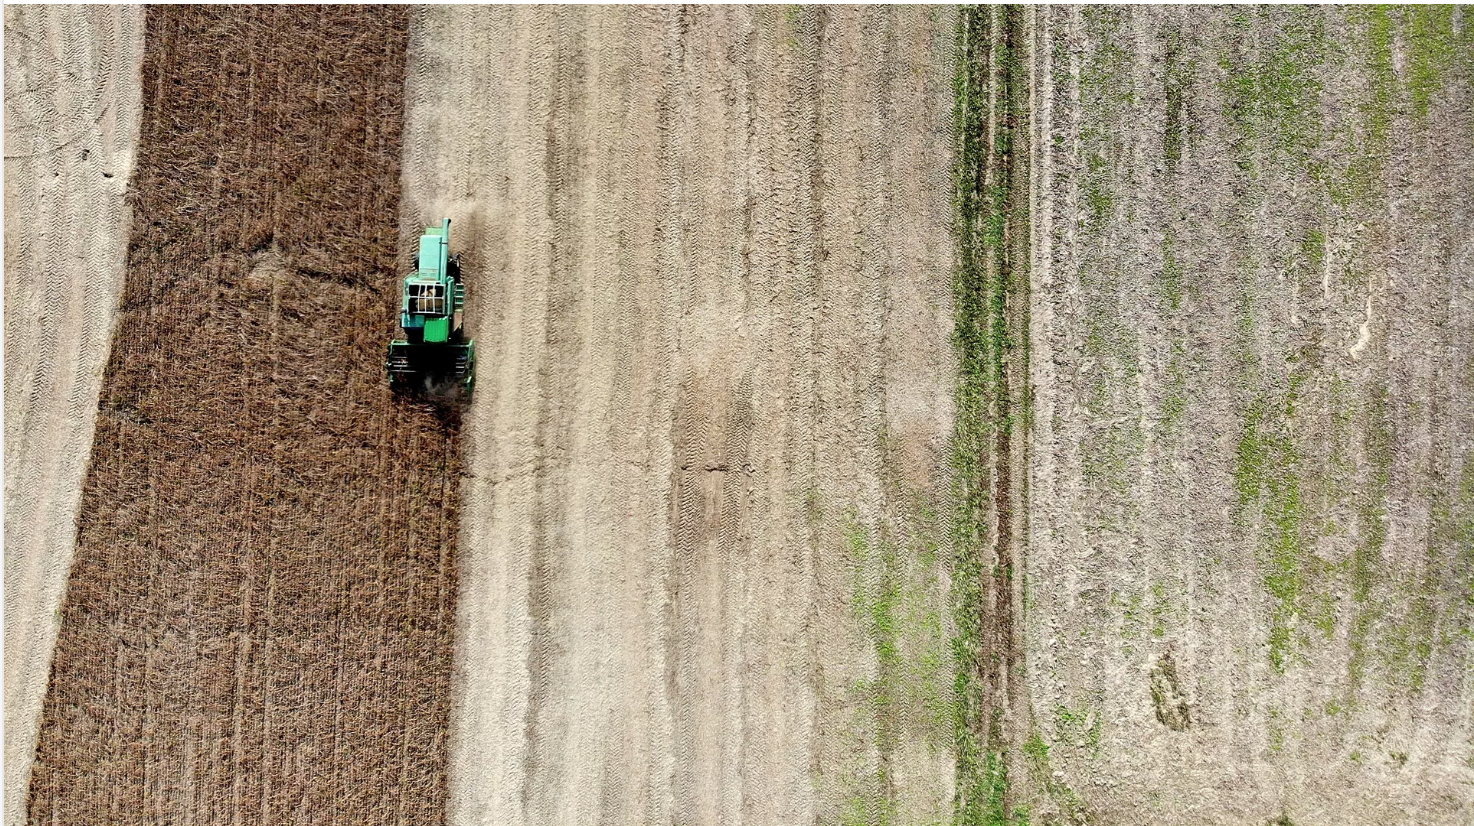 Soy farming in Owings, Maryland, which sells its crop to U.S. chicken farmers. Photo: Mark Wilson/Getty